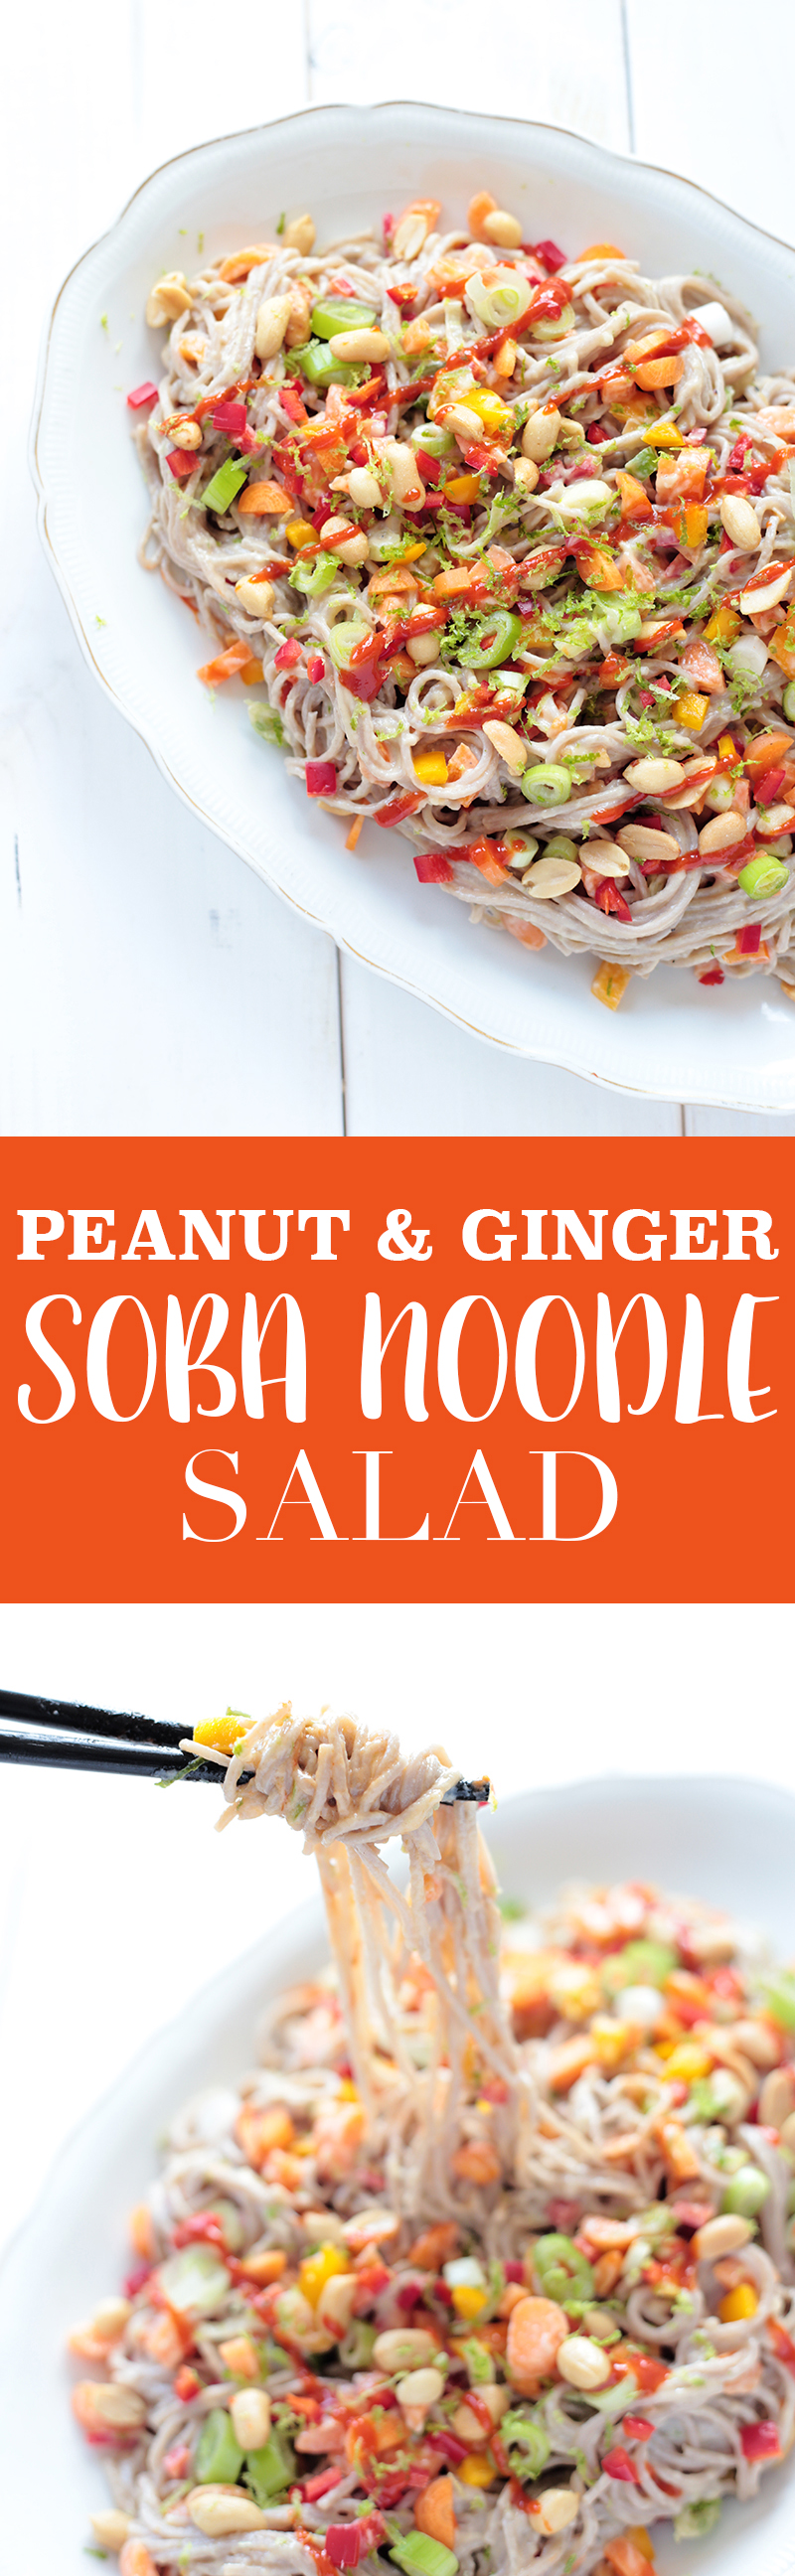 Soba Noodle Salad with Peanut and Ginger